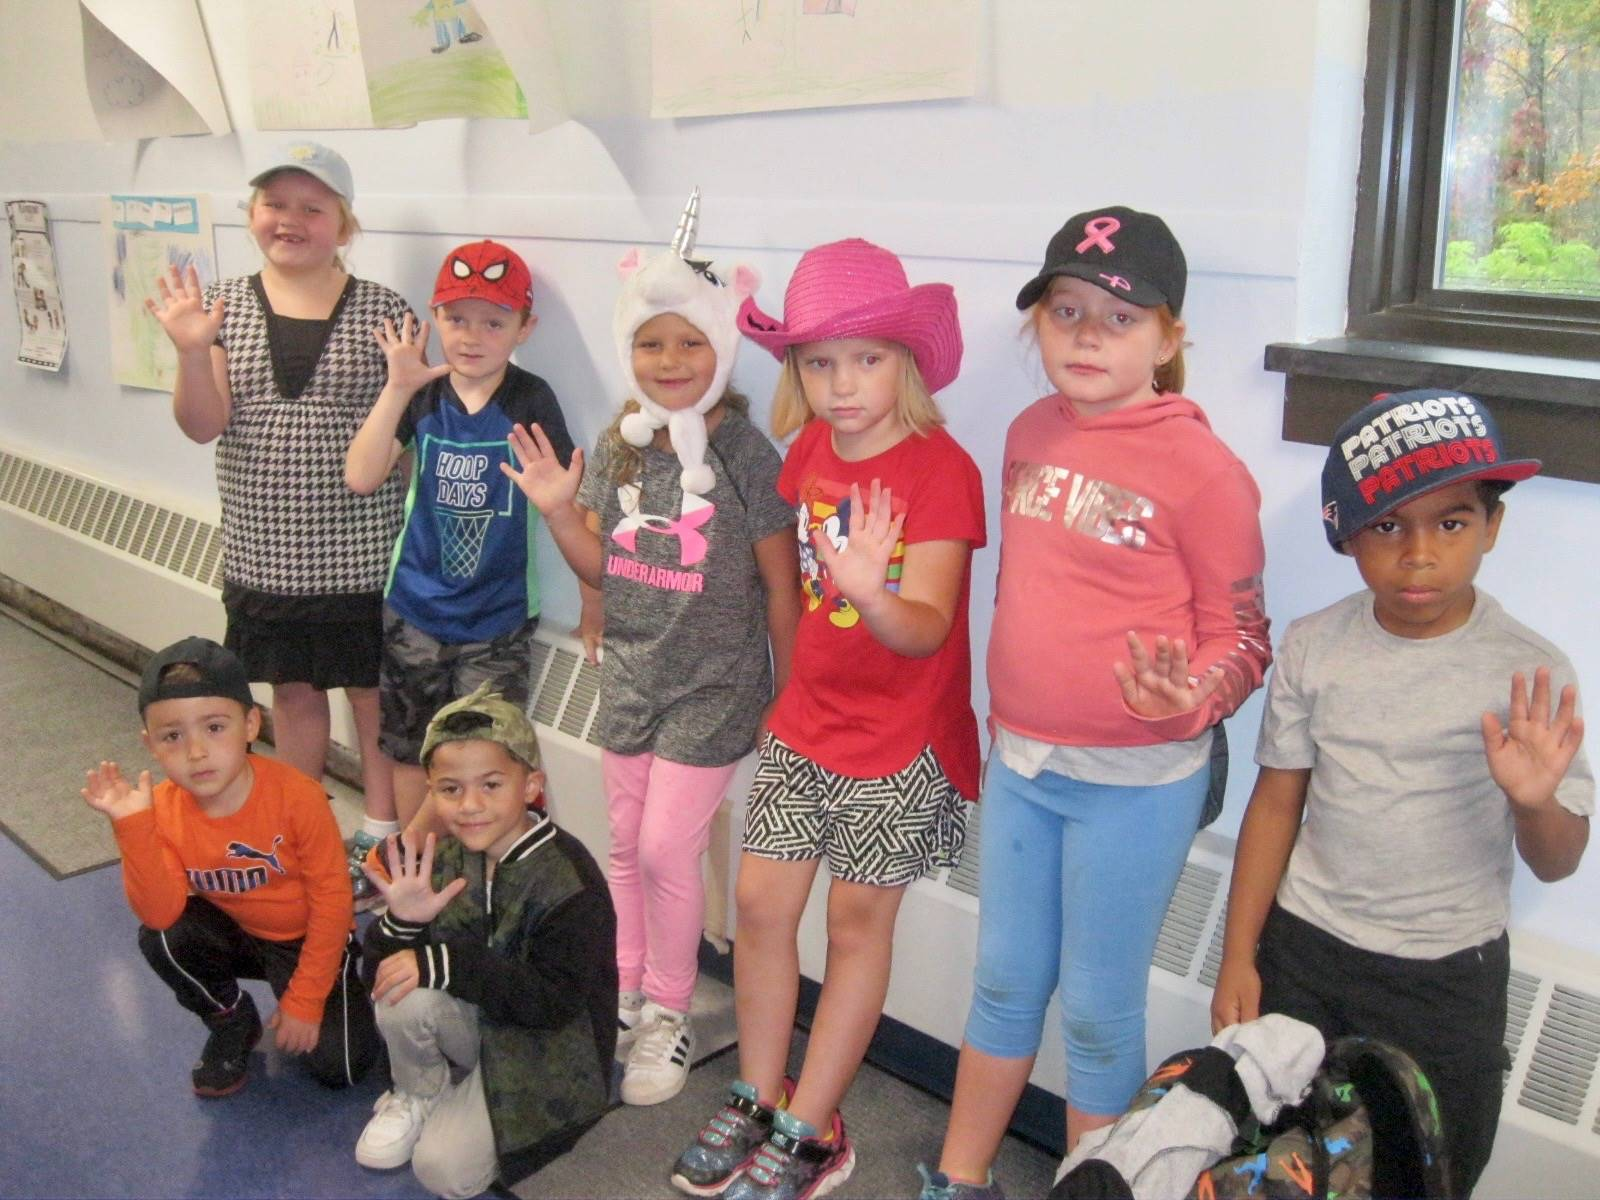 Several students show off hats